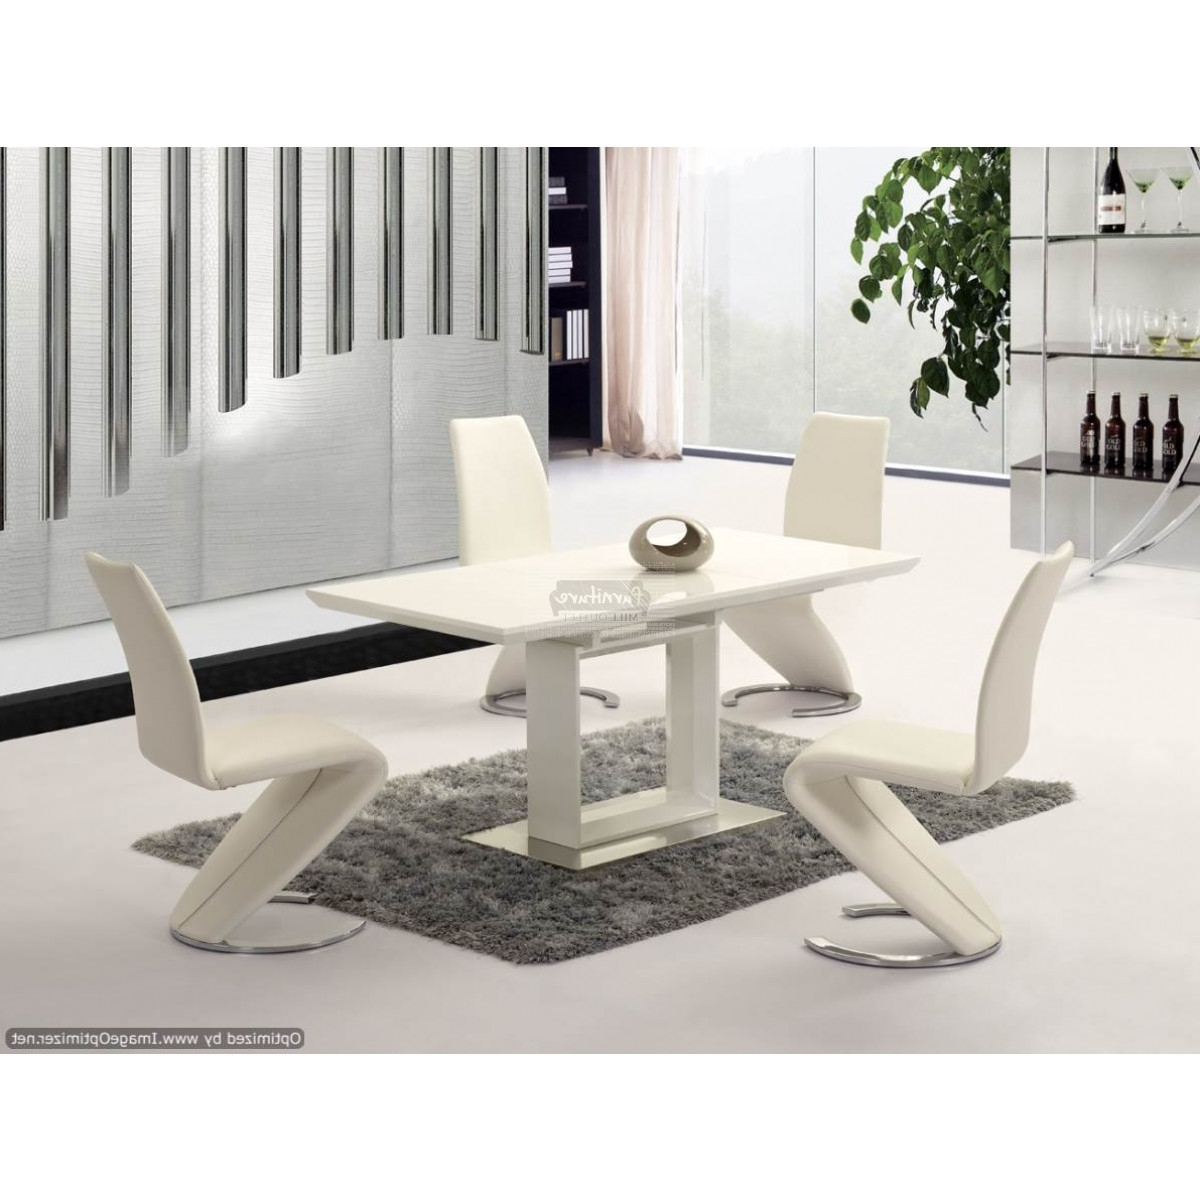 Best And Newest High Gloss Extending Dining Tables Intended For Space White High Gloss Extending Dining Table – 120Cm To 160Cm (View 7 of 25)